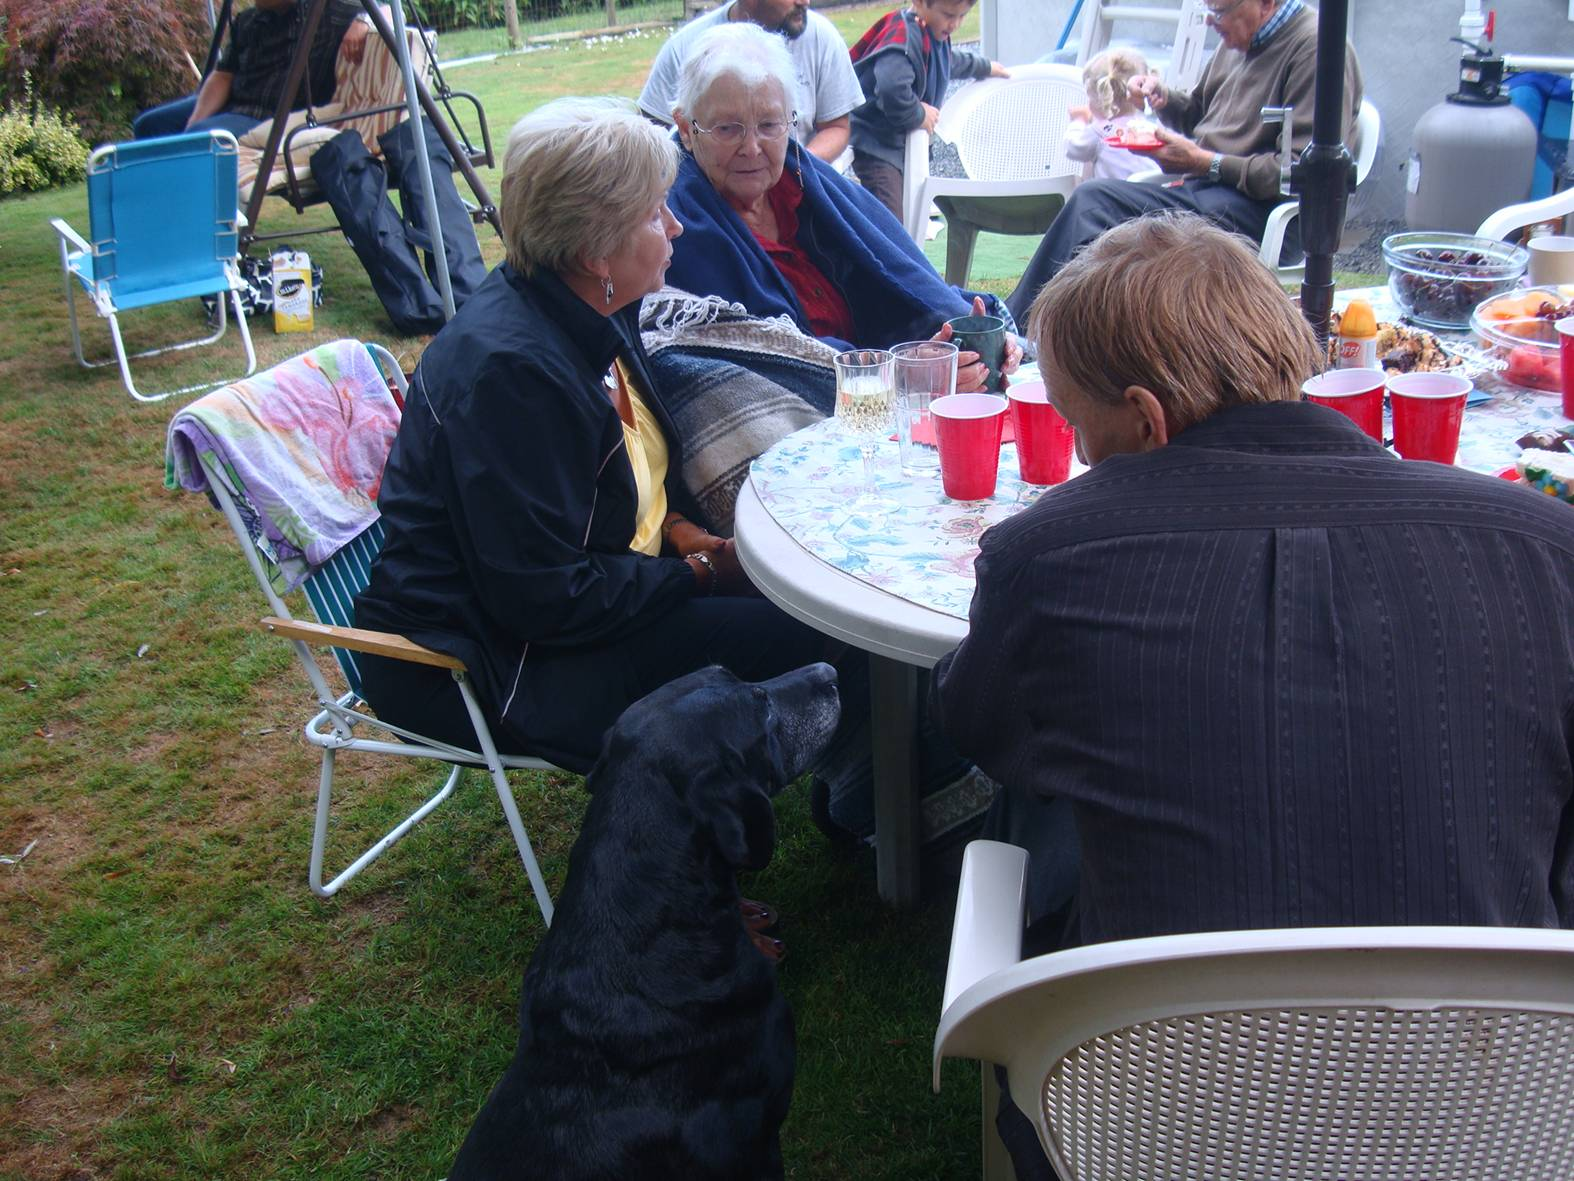 picture: the wedding party in Ruskin, B.C.  High overcast but no rain. My mother and Cousin Reta get a chance to chat, while one of several dogs hopes for a treat.  Ruskin, B.C.